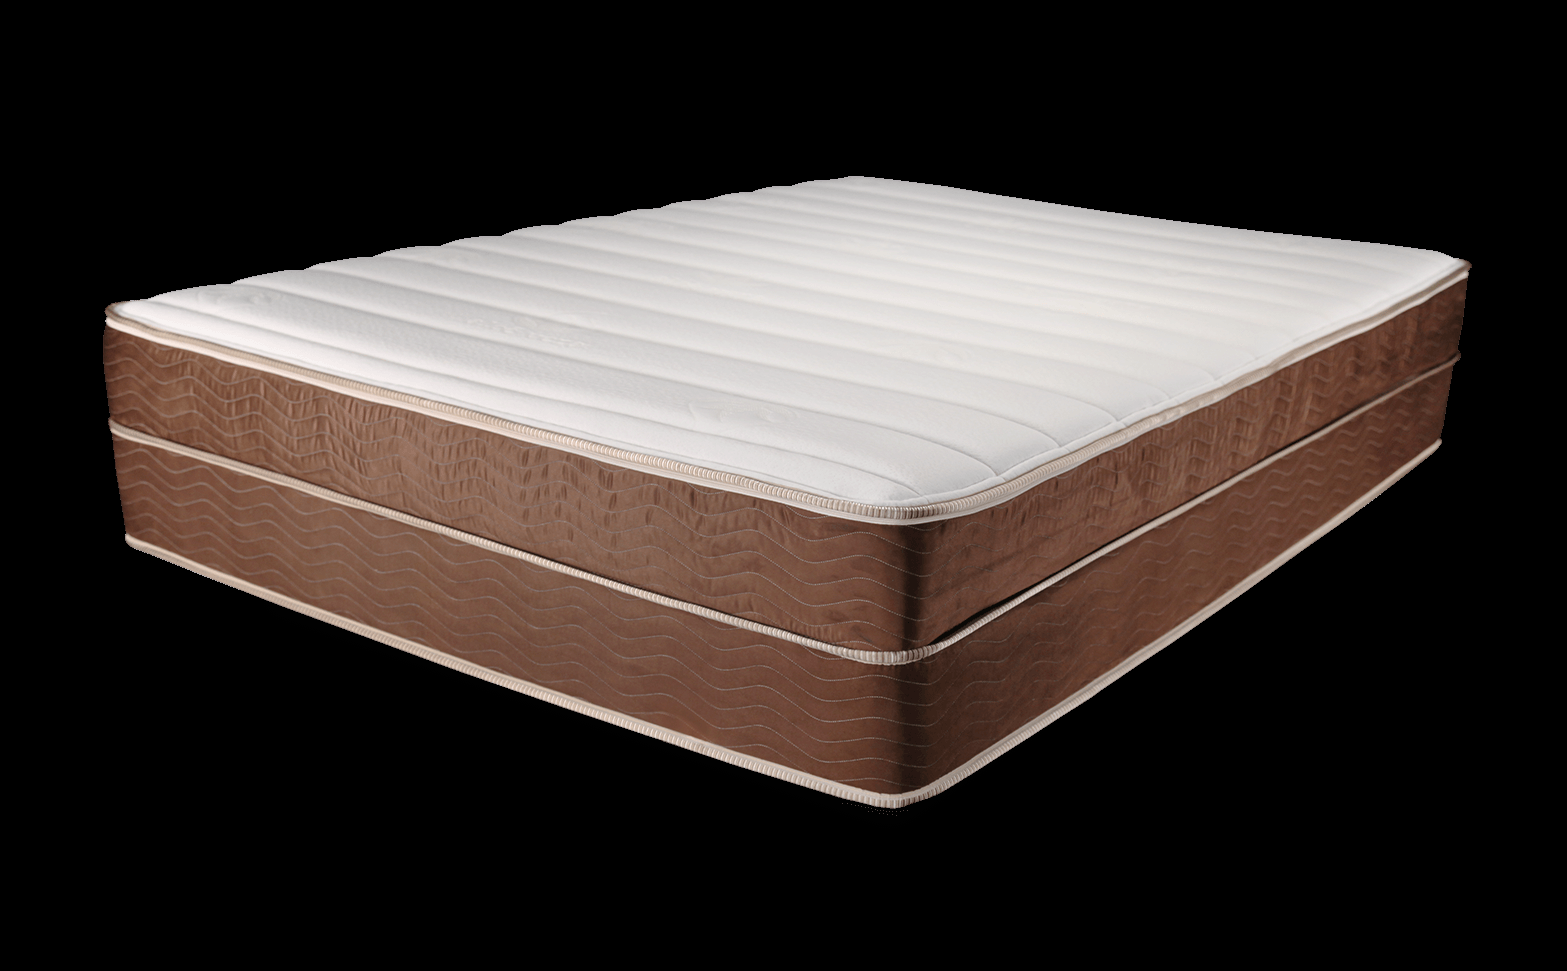 Dreamfoam Bedding Mattress Reviews Goodbed Com